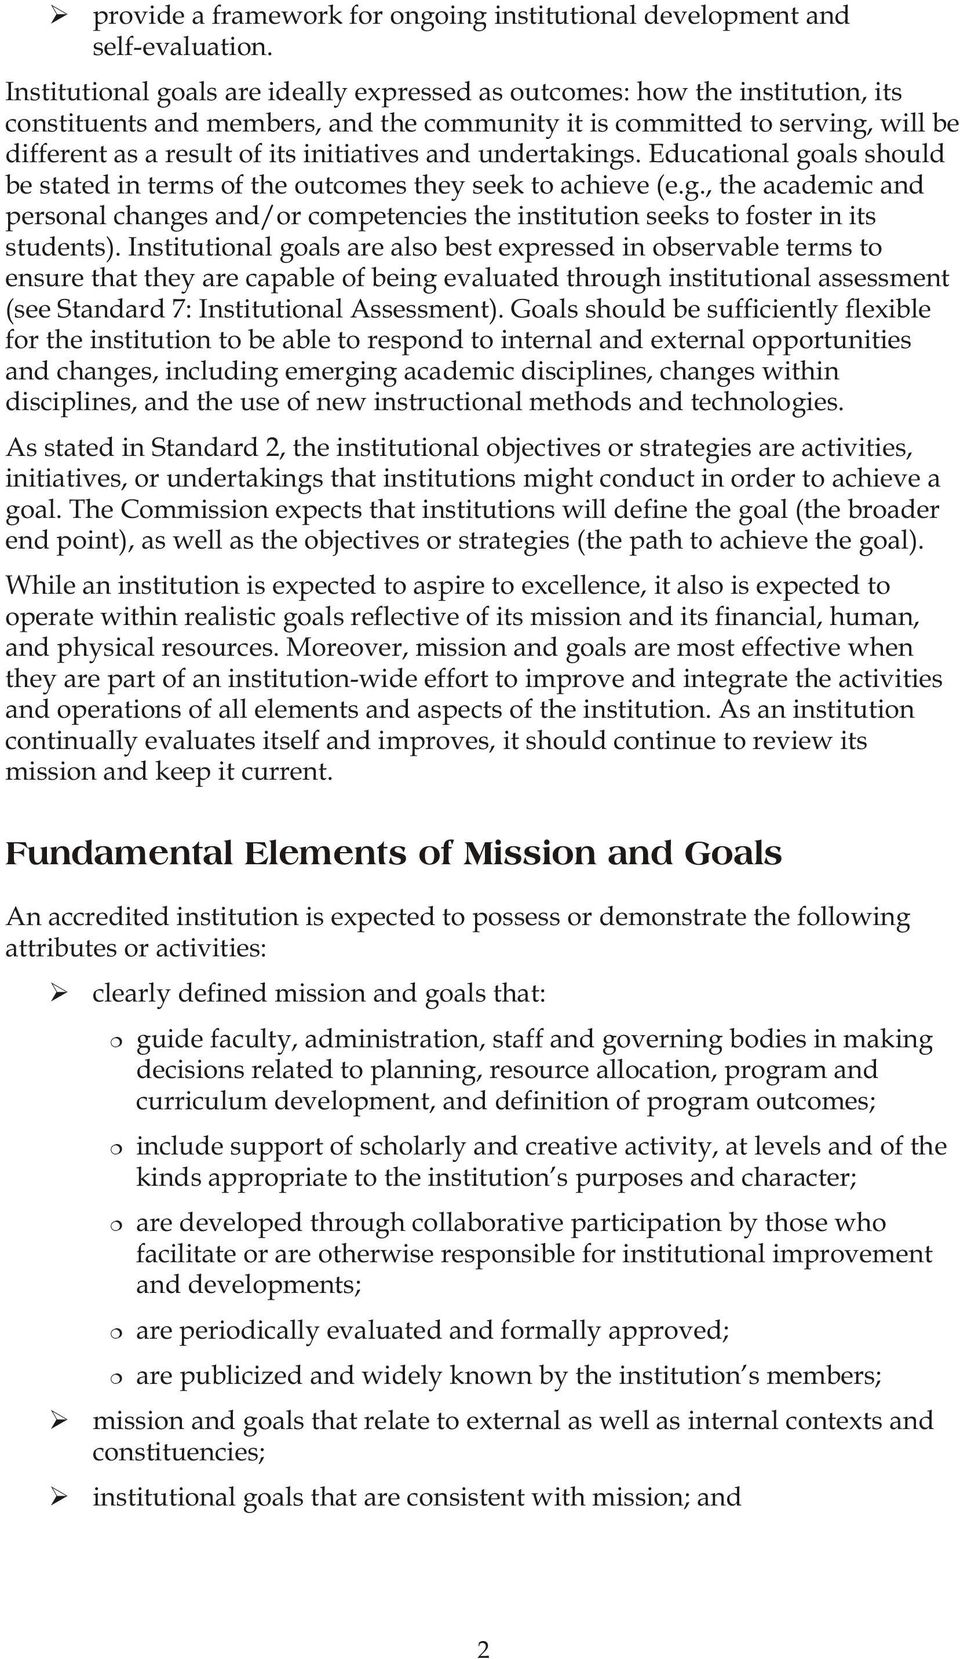 initiatives and undertakings. Educational goals should be stated in terms of the outcomes they seek to achieve (e.g., the academic and personal changes and/or competencies the institution seeks to foster in its students).